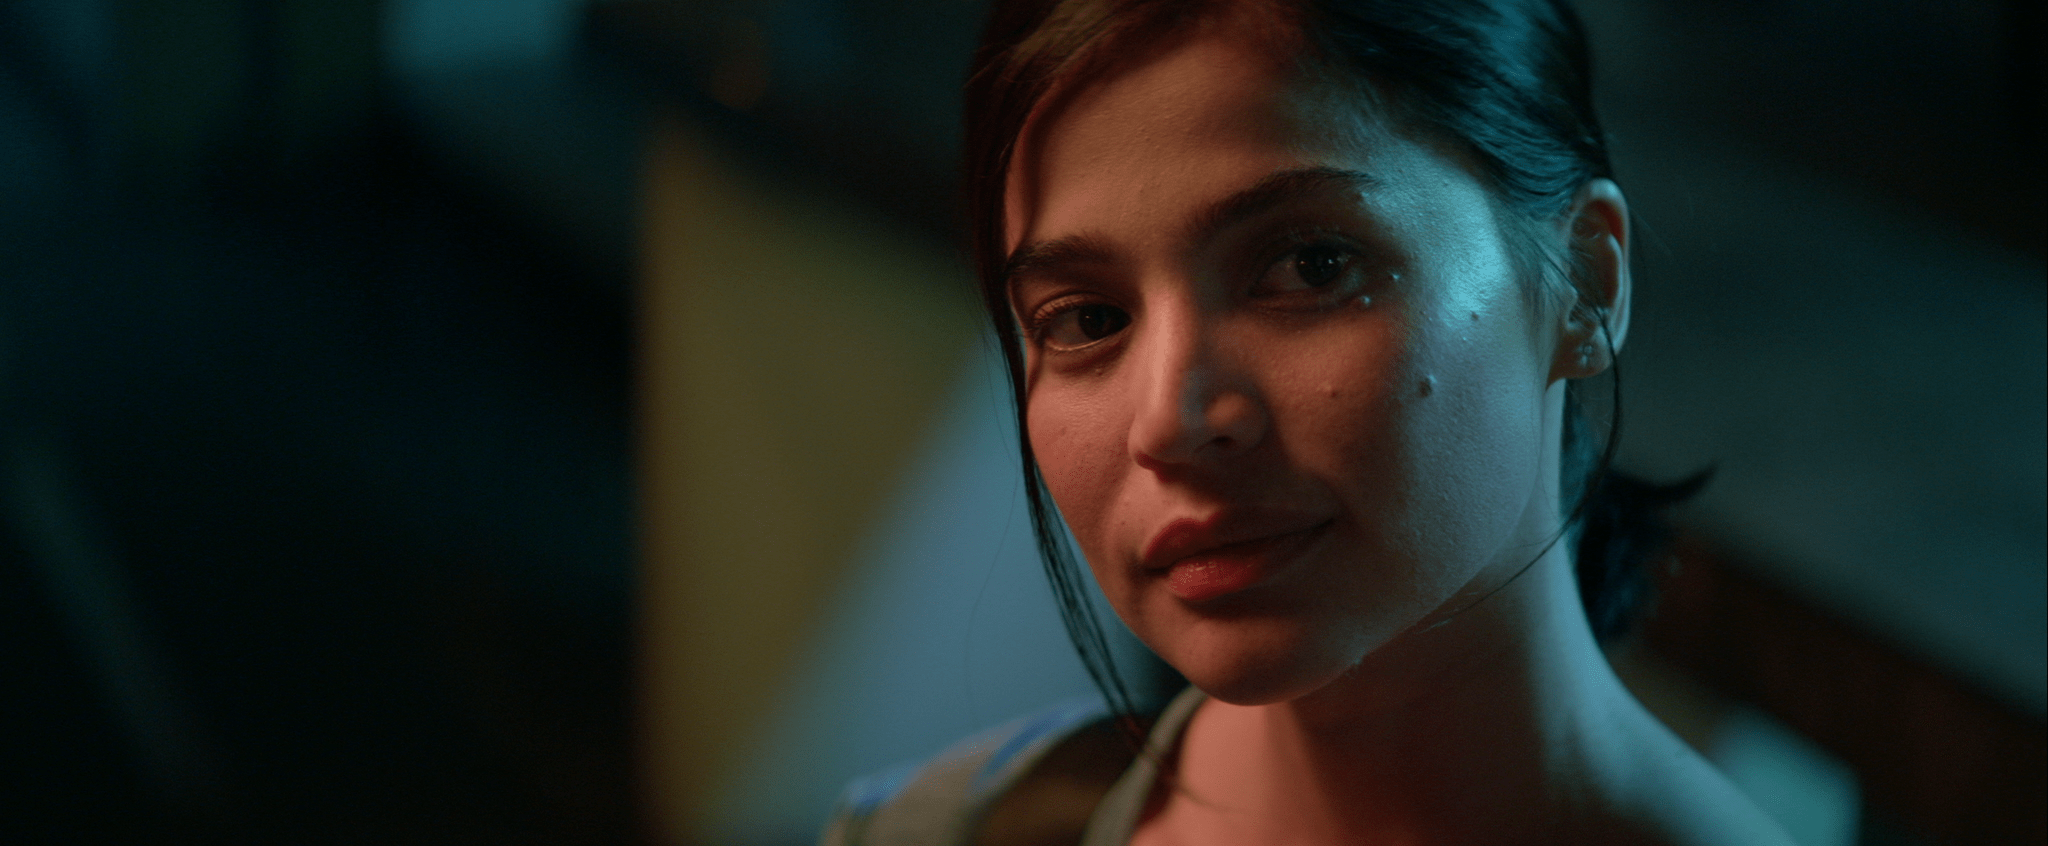 NYAFF 2018: SID & AYA (NOT A LOVE STORY) Review 4